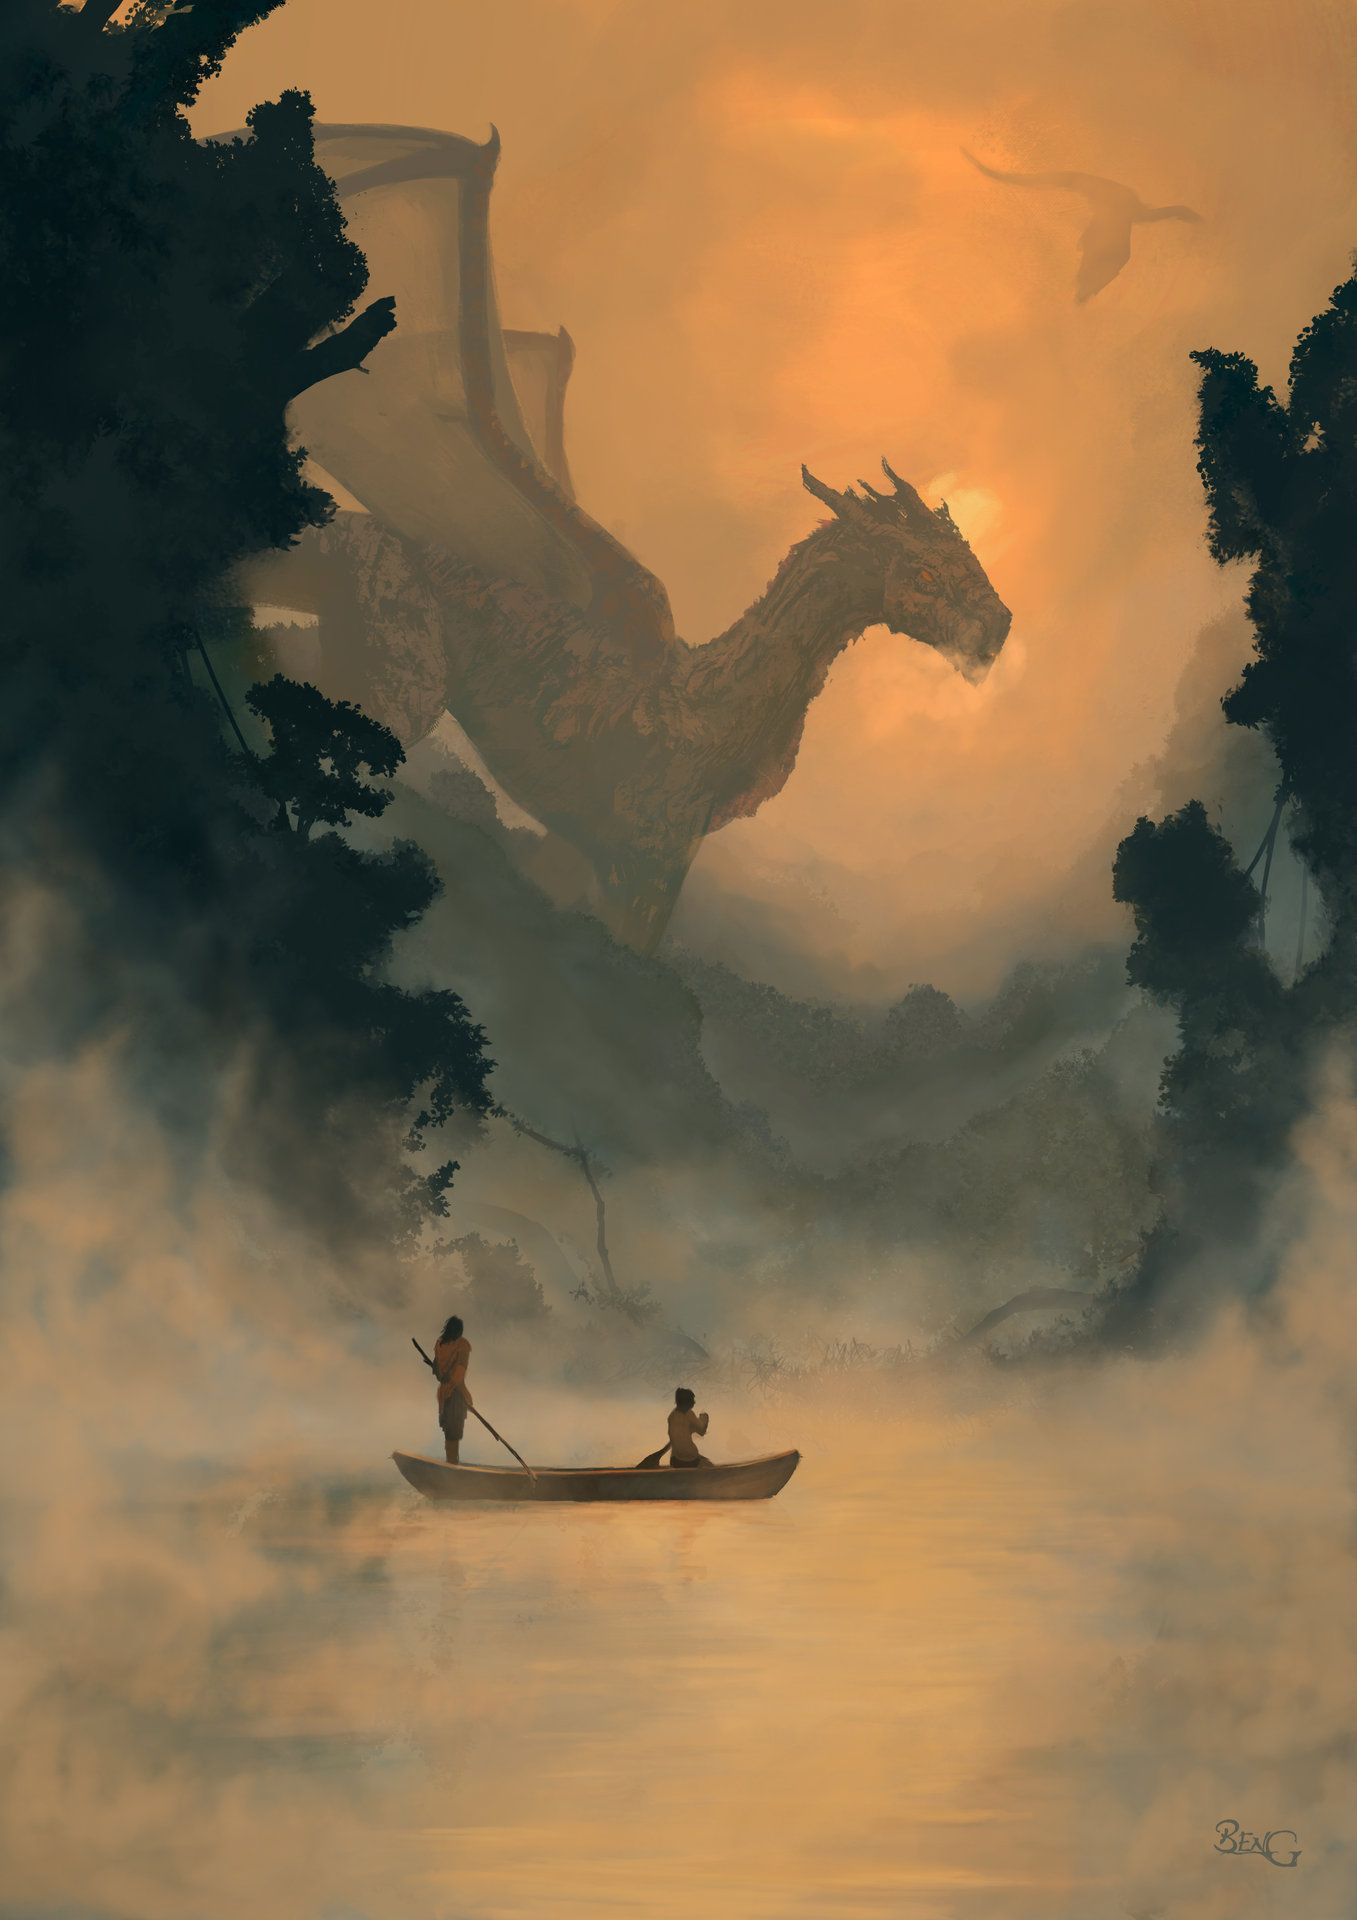 Ben Guldemond Misty Mornings Tell Me A Story Dragon Dragon Art